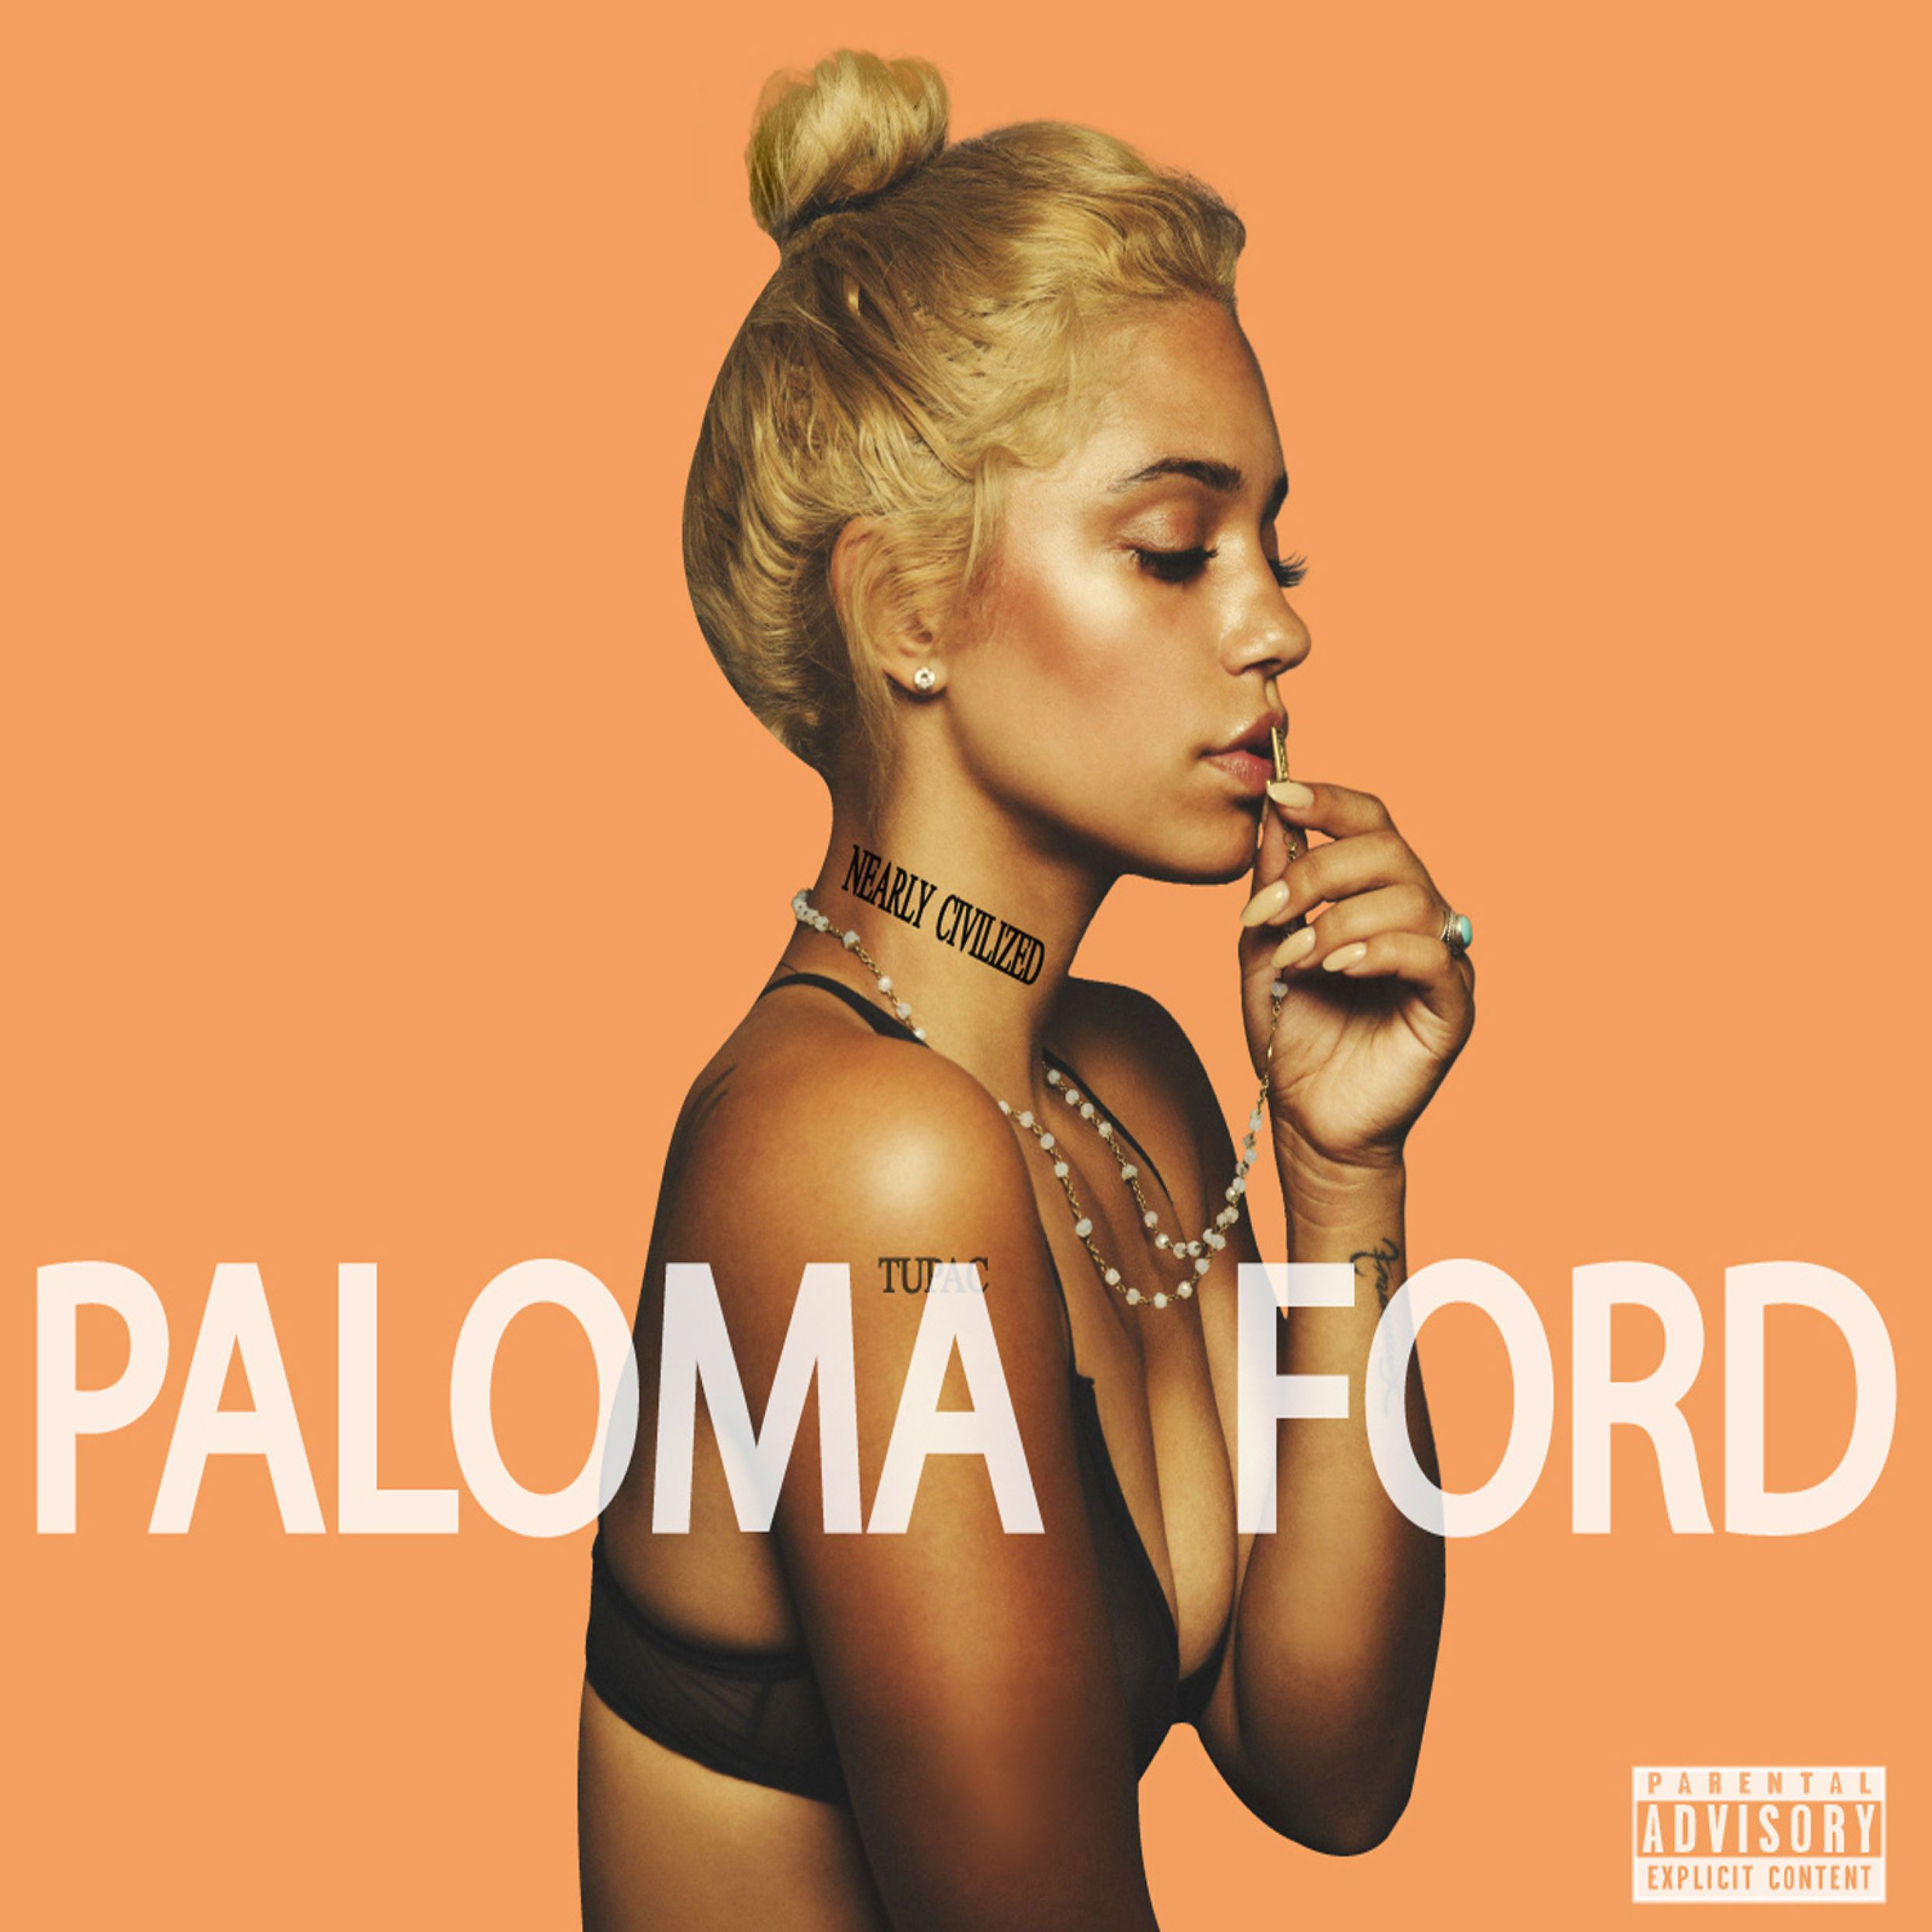 paloma-ford-nearly-civilized-2016